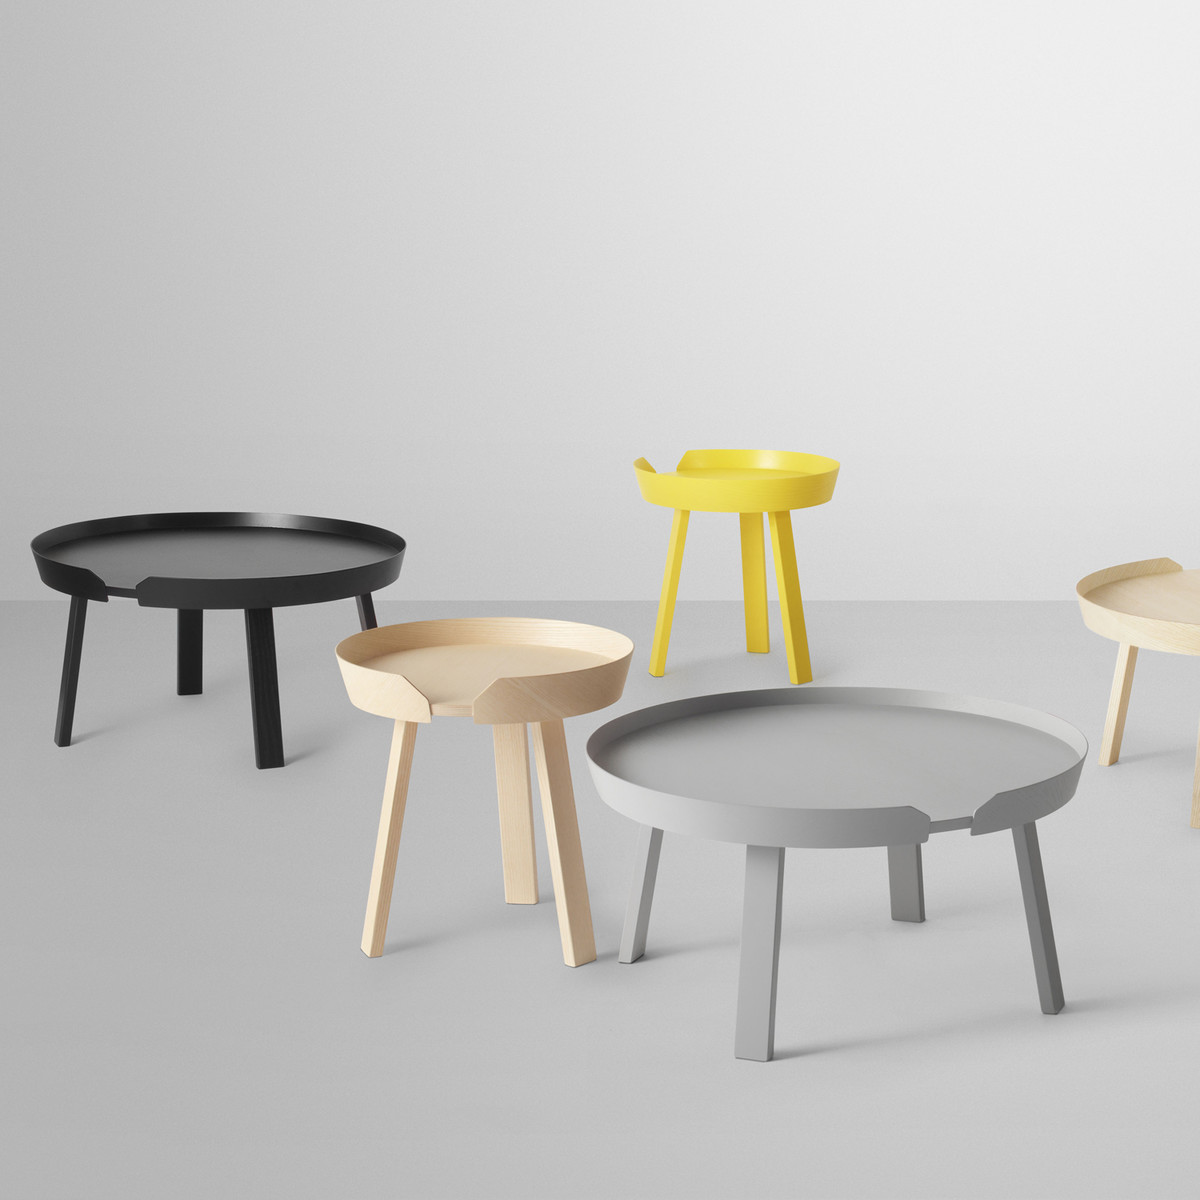 Muuto | around side table made of wood